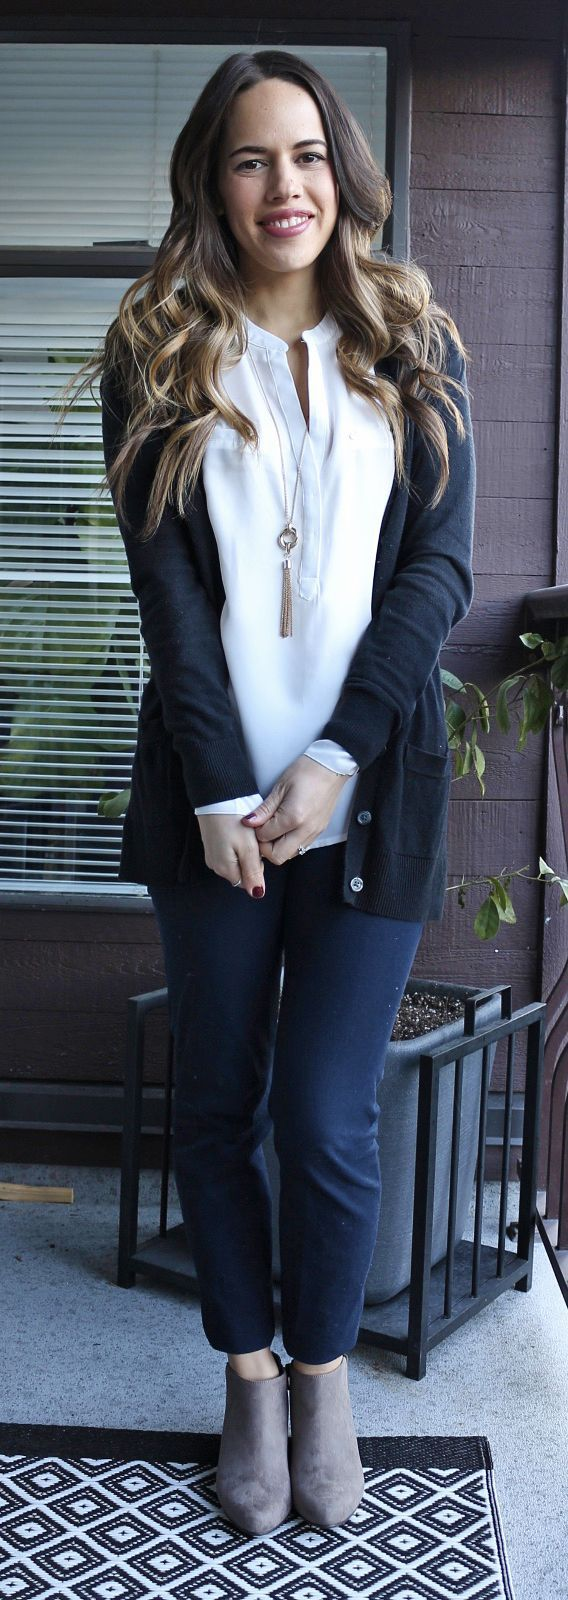 Jules in Flats - Old Navy Pixie Pants and Sueded Booties, Dynamite blouse, Gap cardigan https://bellanblue.com